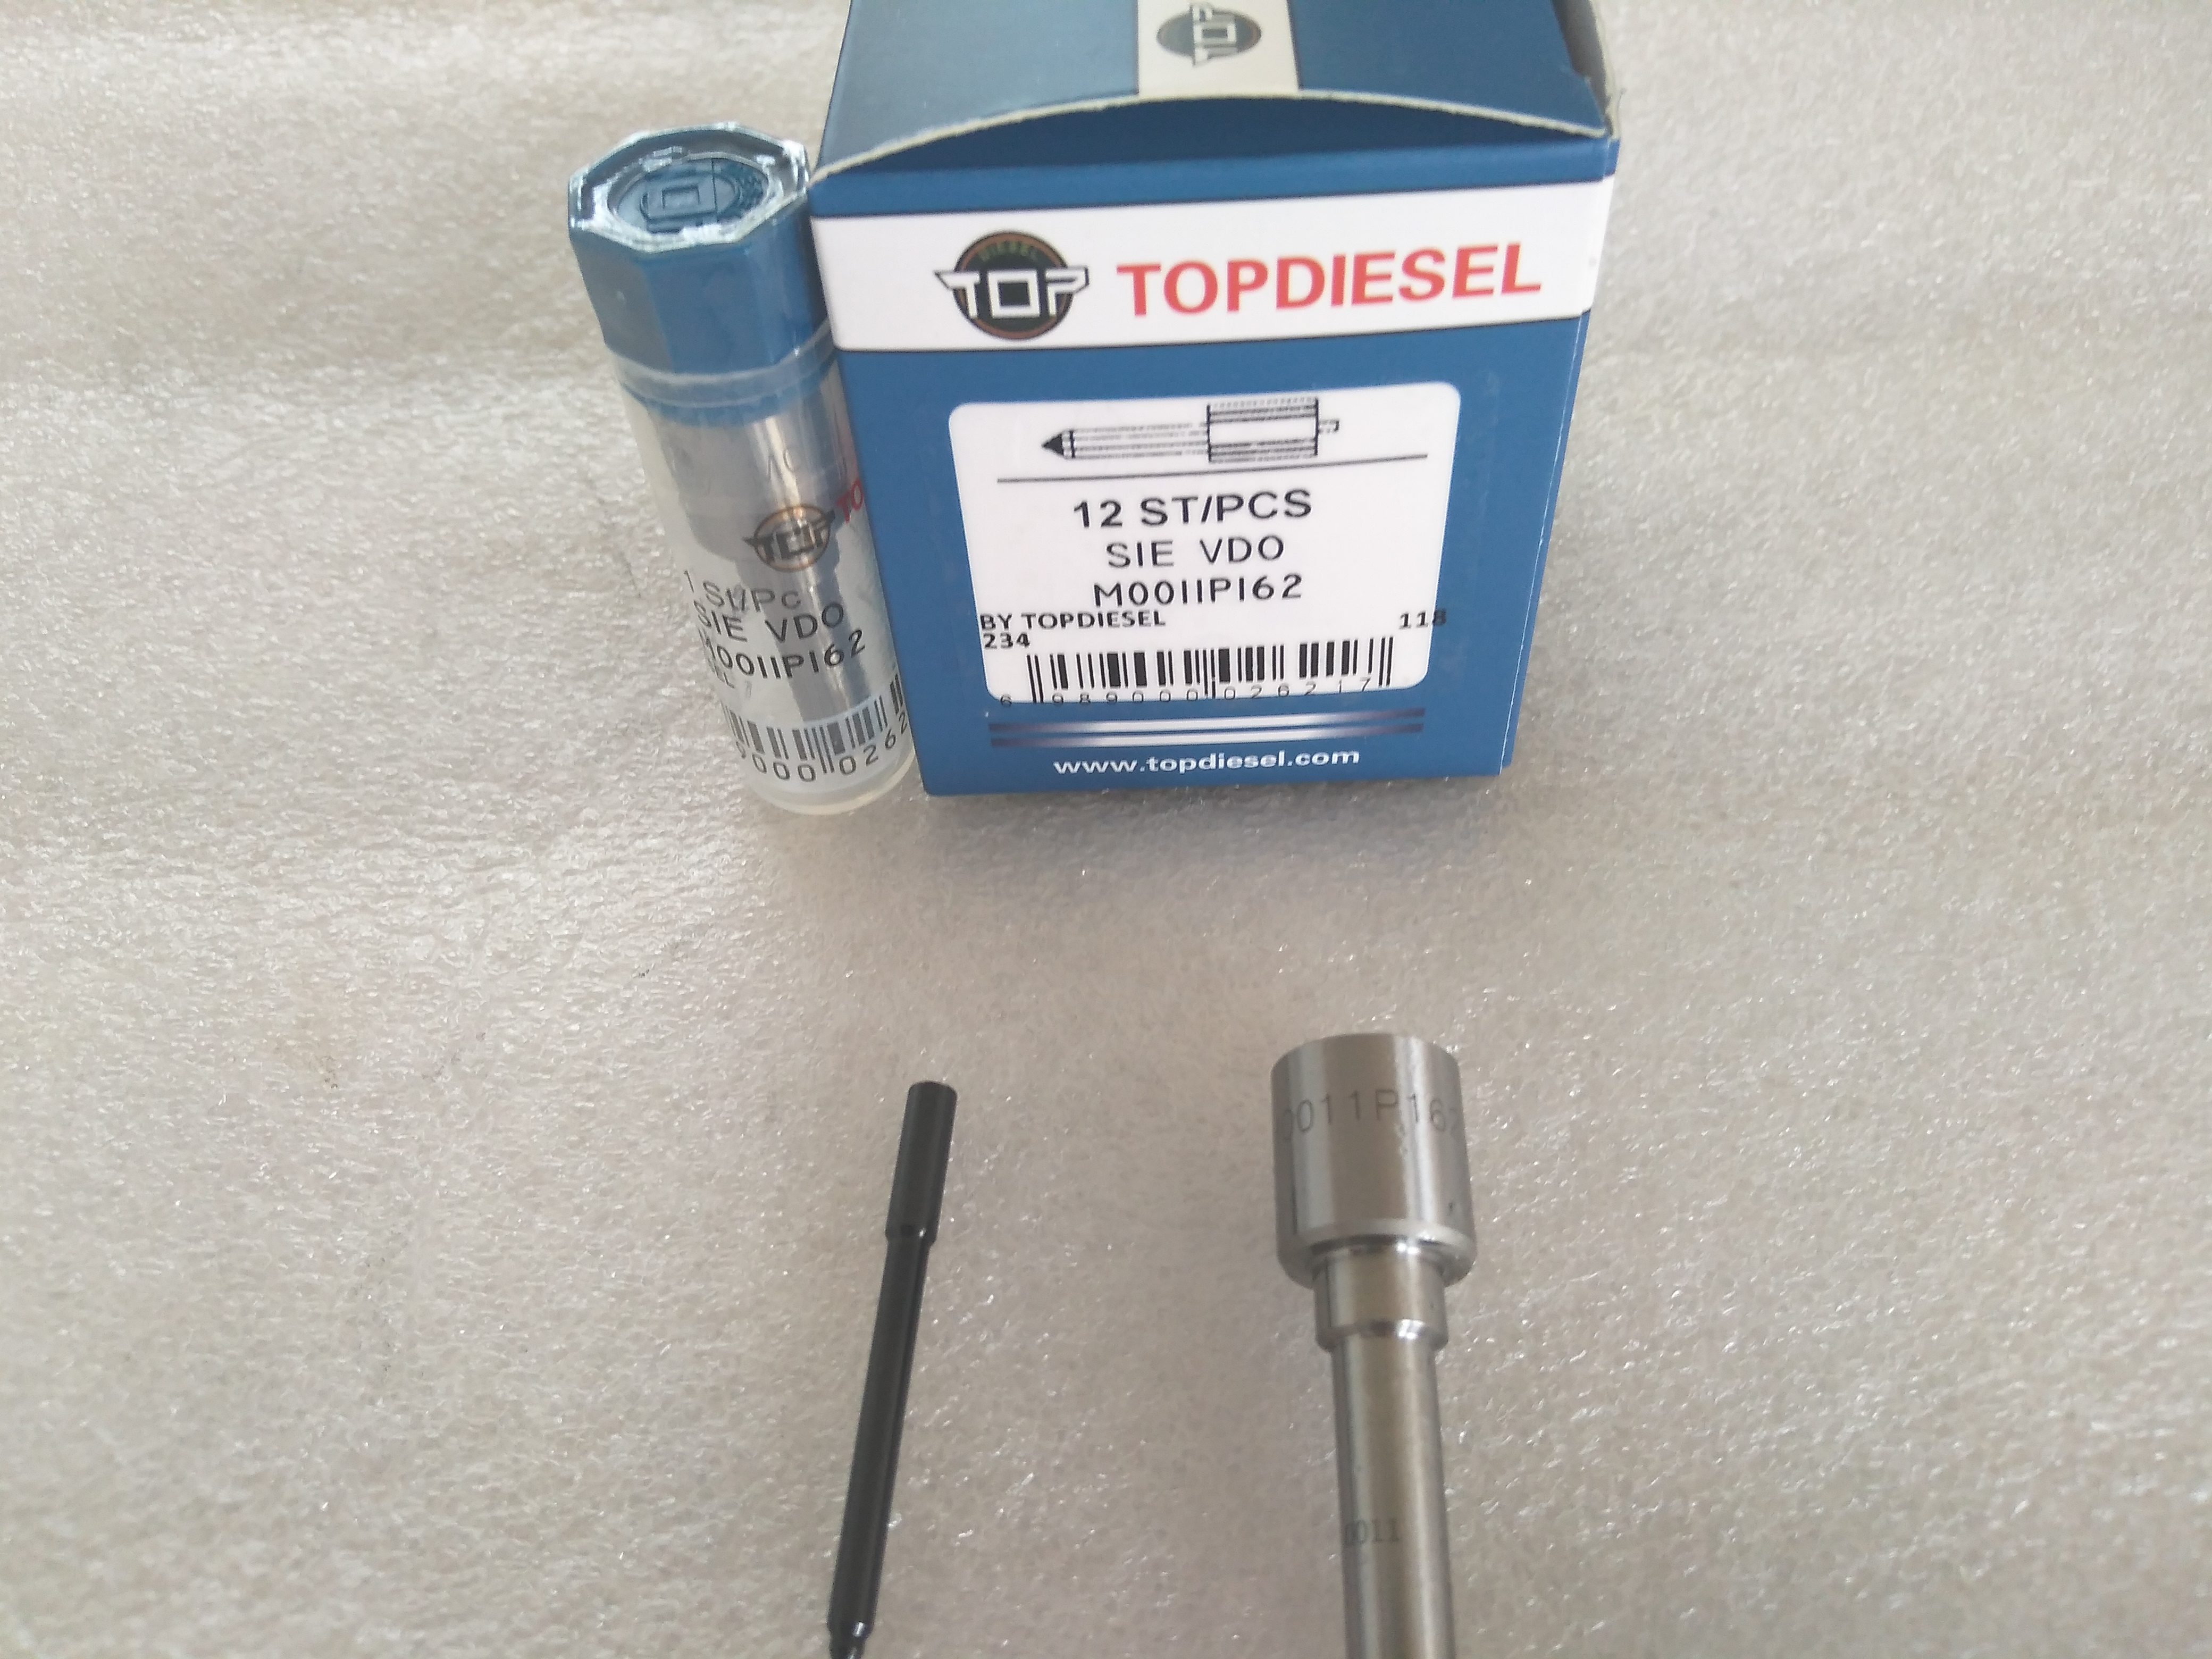 Topdiesel Common Rail Injector Nozzle M0011P162 for Injector (5WS40539) A2C59513554